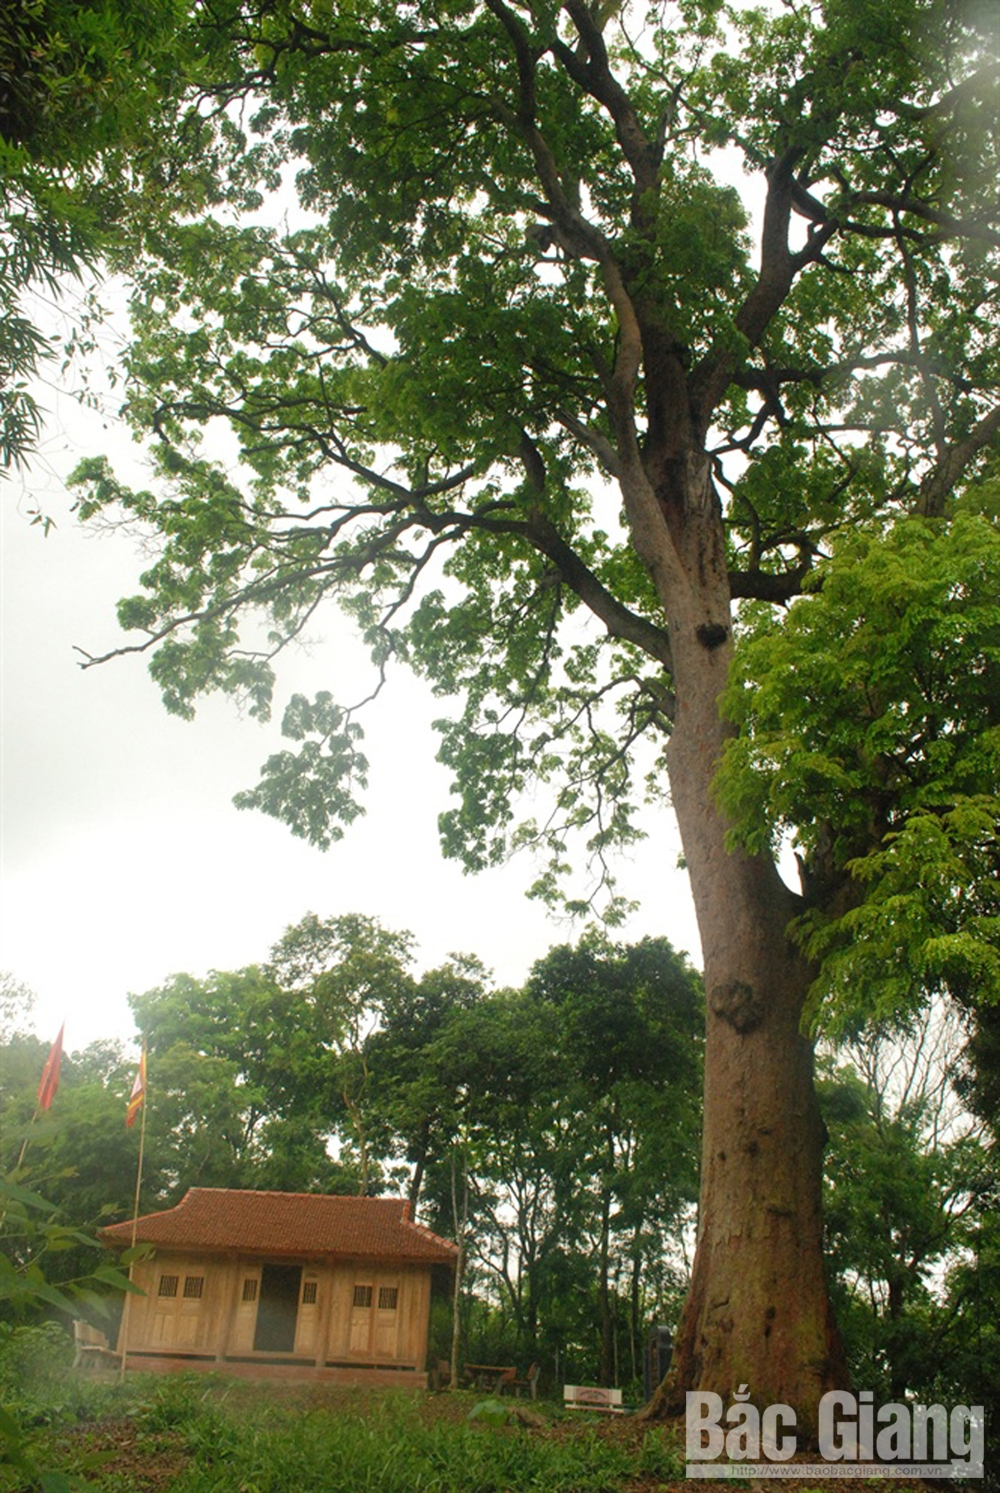 Millennial ironwood tree, treasure of Yen The forest, Bac Giang province, ancient giant green ironwood tree, ancient relics